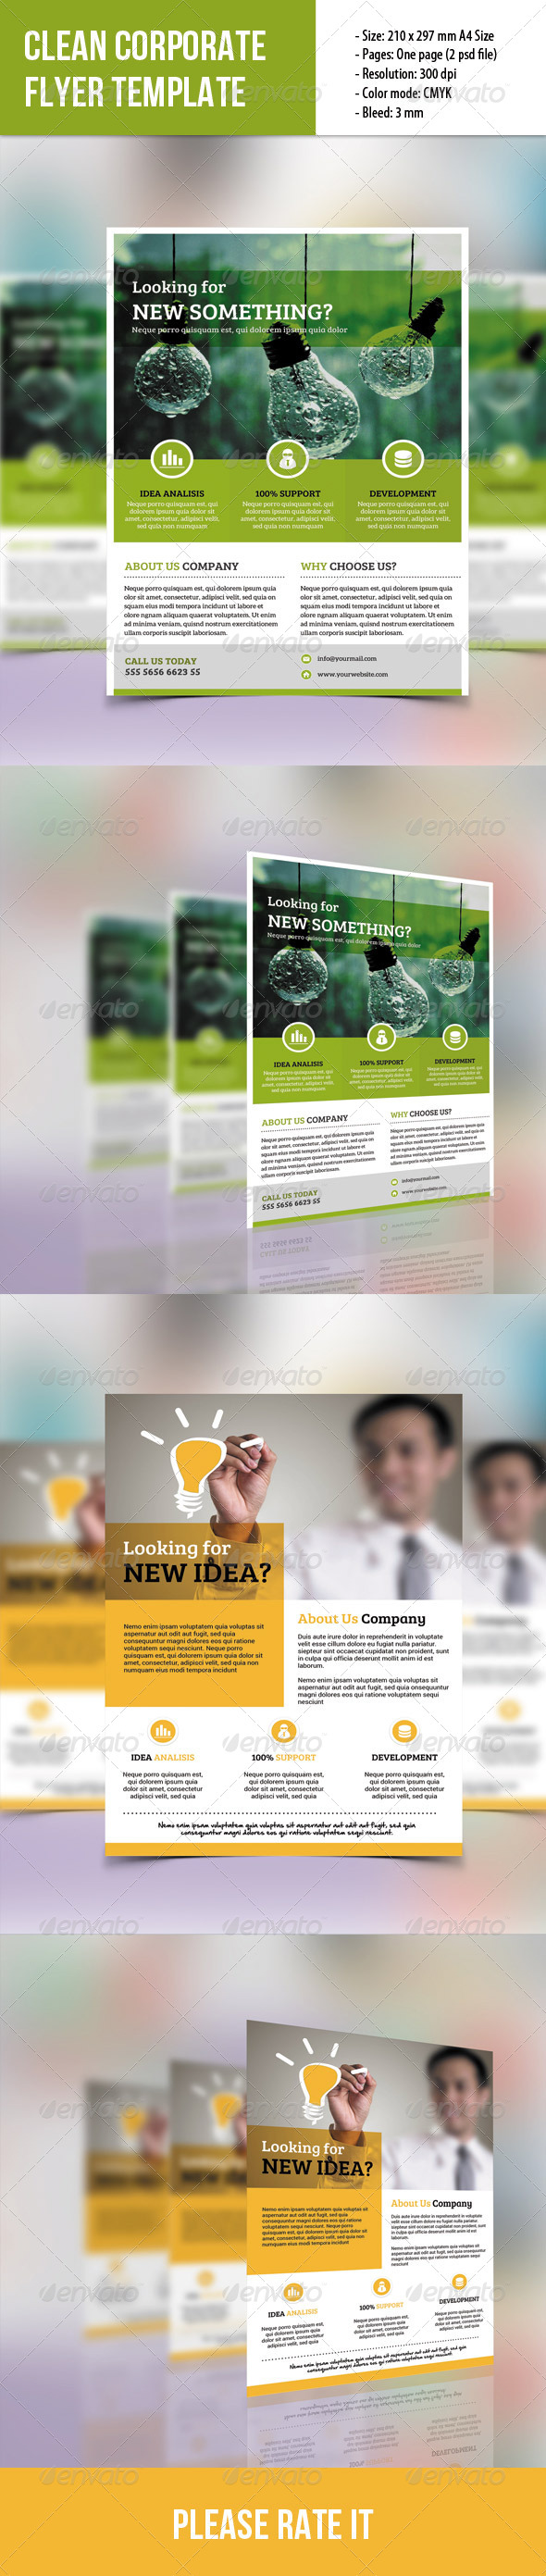 GraphicRiver 2 Clean Corporate Flyer 7824640